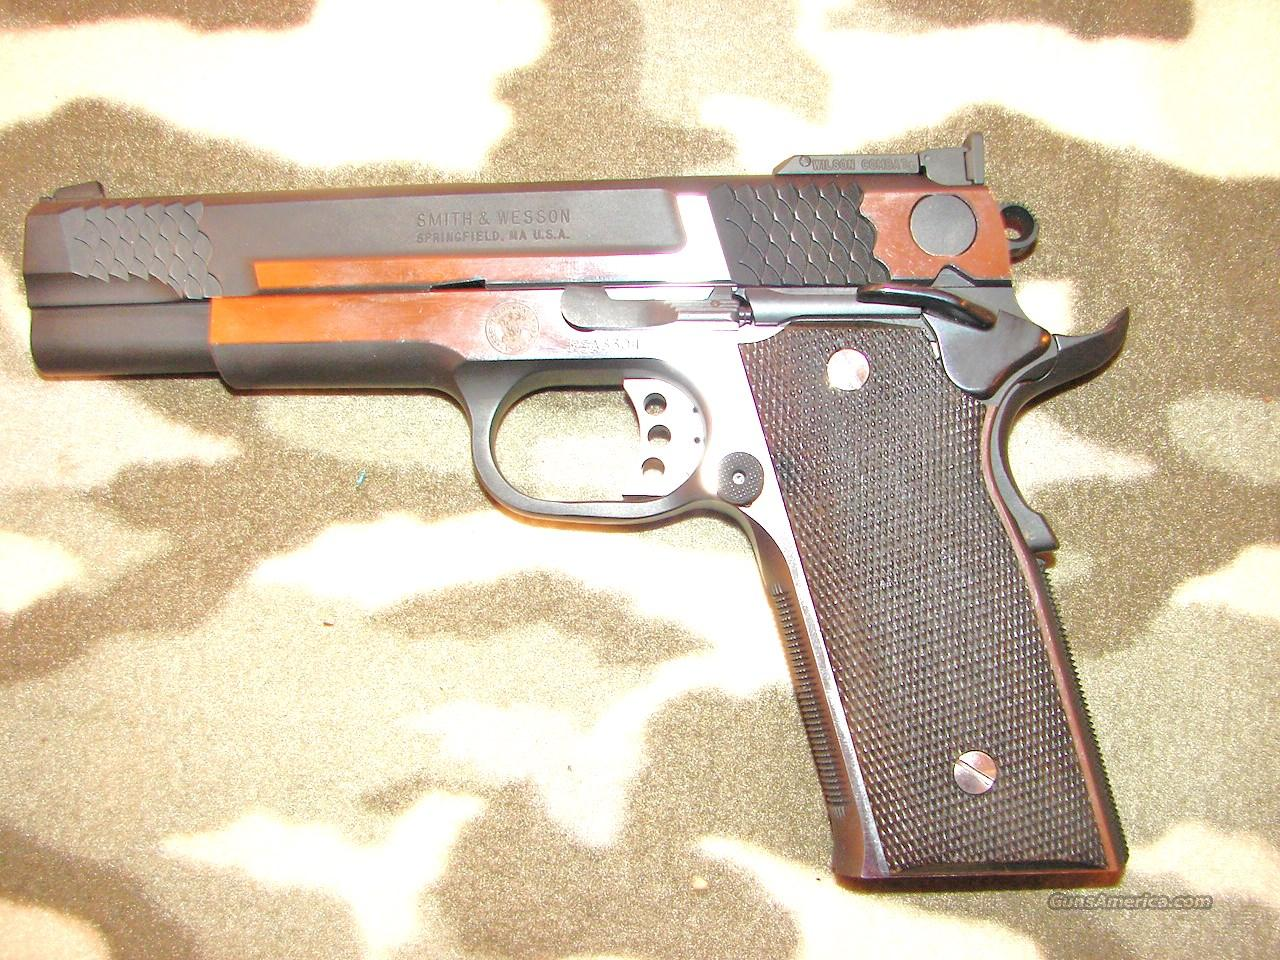 Smith & Wesson 945-1 PC  Guns > Pistols > Smith & Wesson Pistols - Autos > Steel Frame